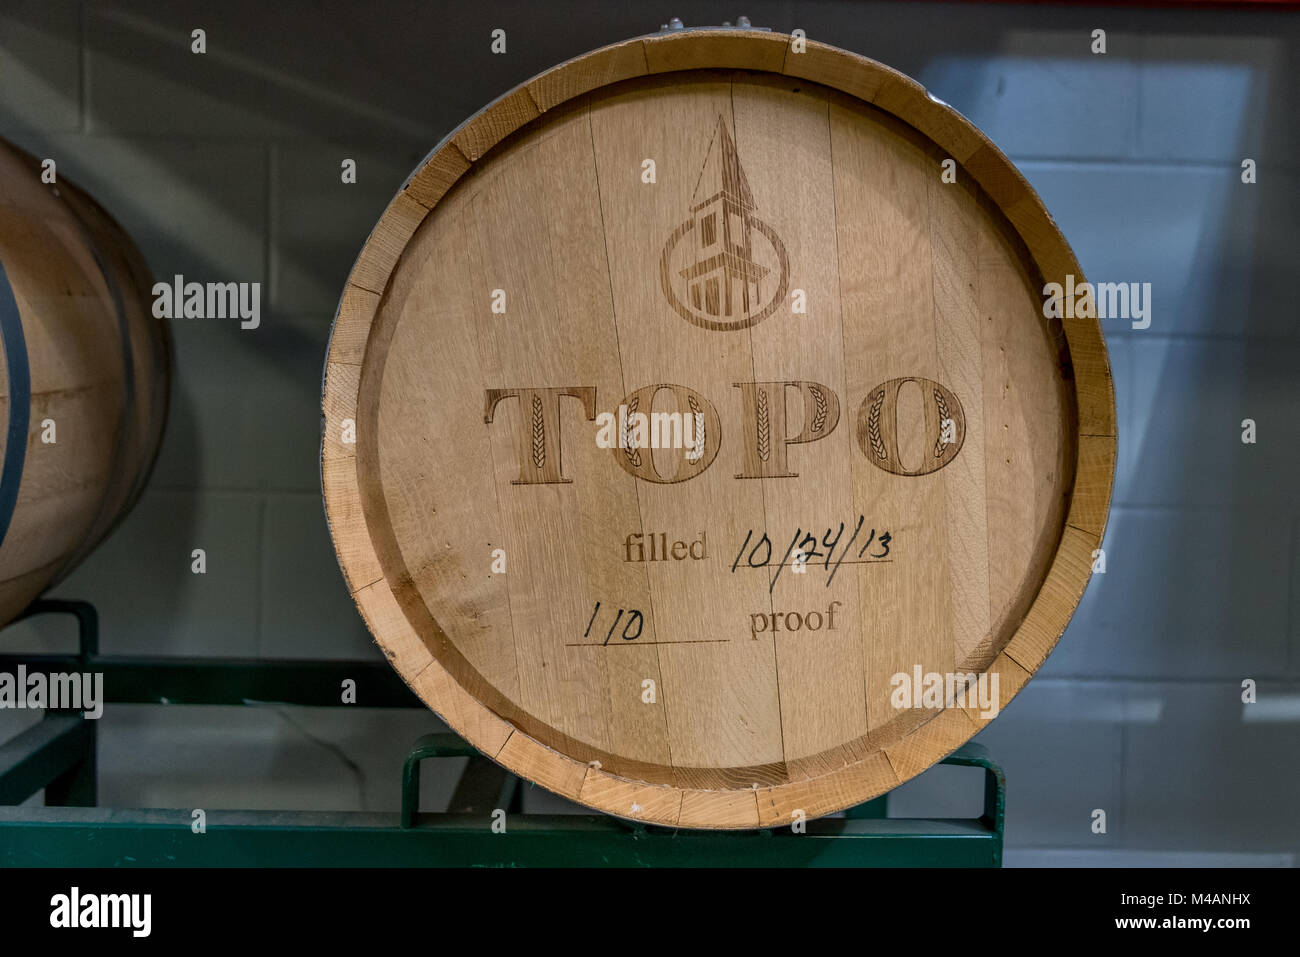 An aging wooden barrel of spirits at Topo Organic Spirits Distillery in Chapel Hill, North Carolina. - Stock Image